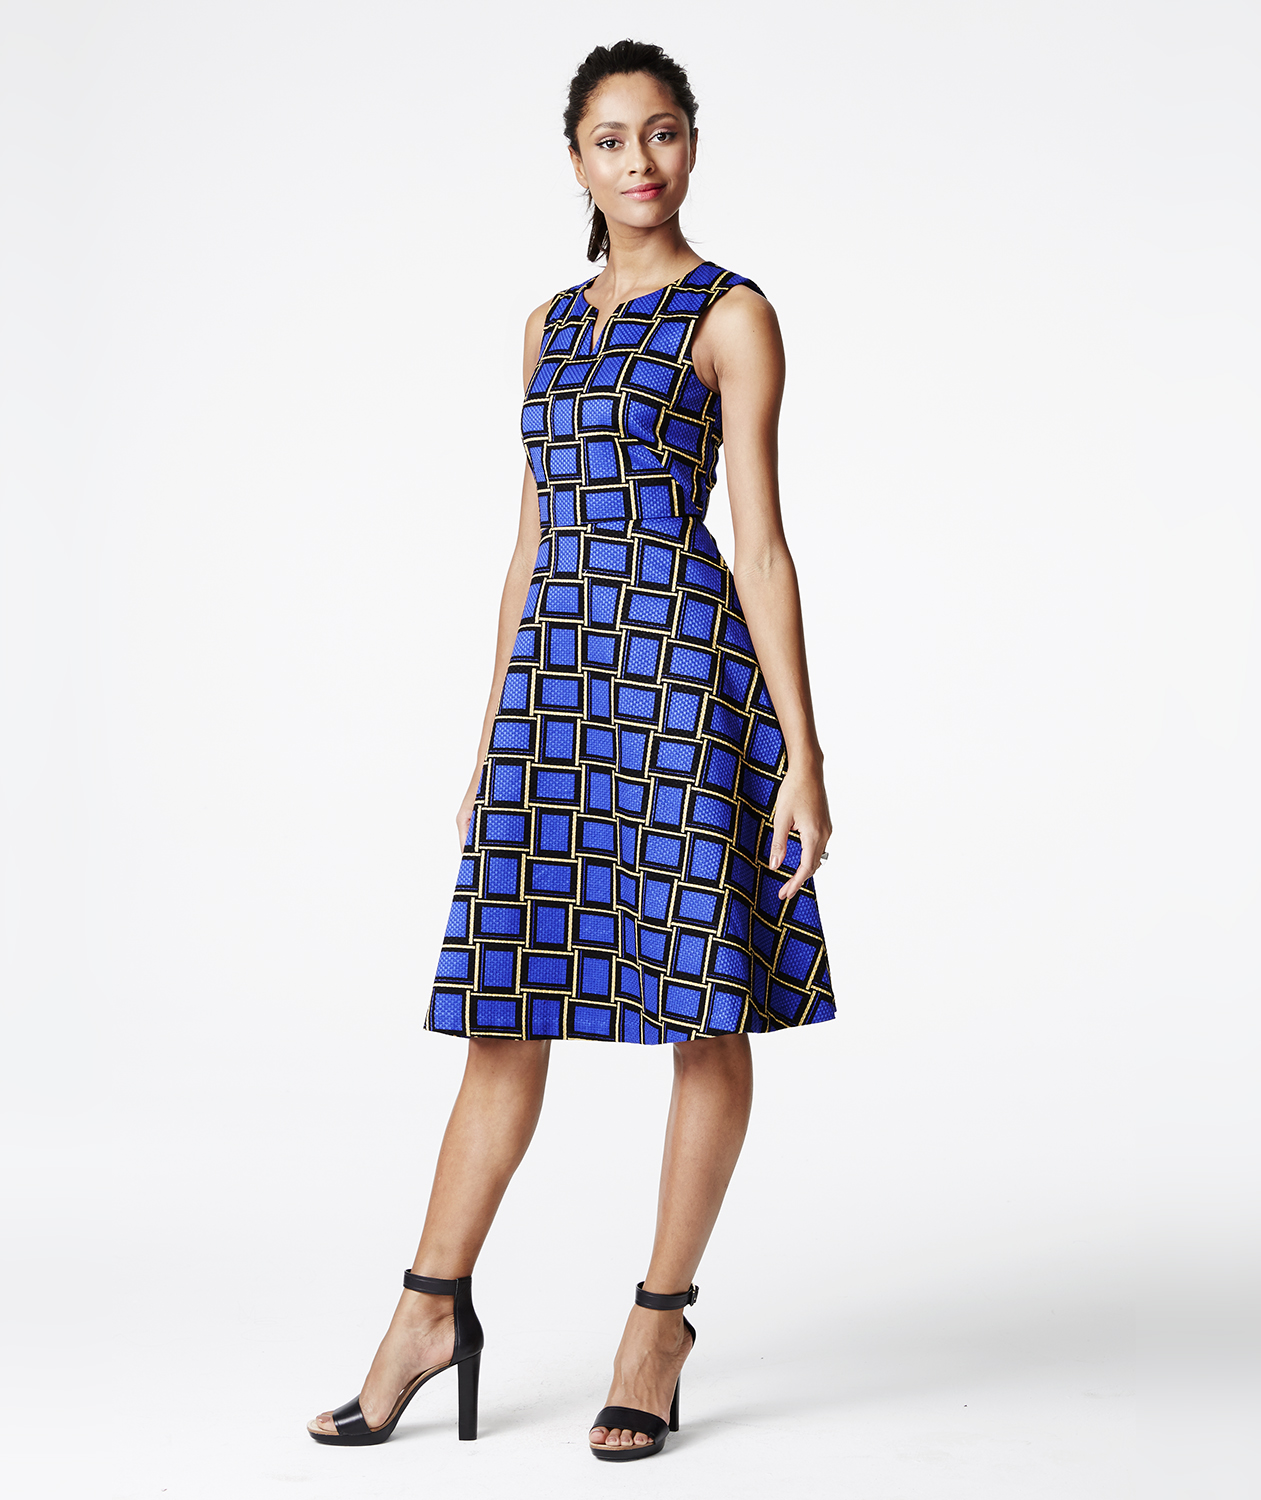 The Limited Printed Textured A-Line Dress